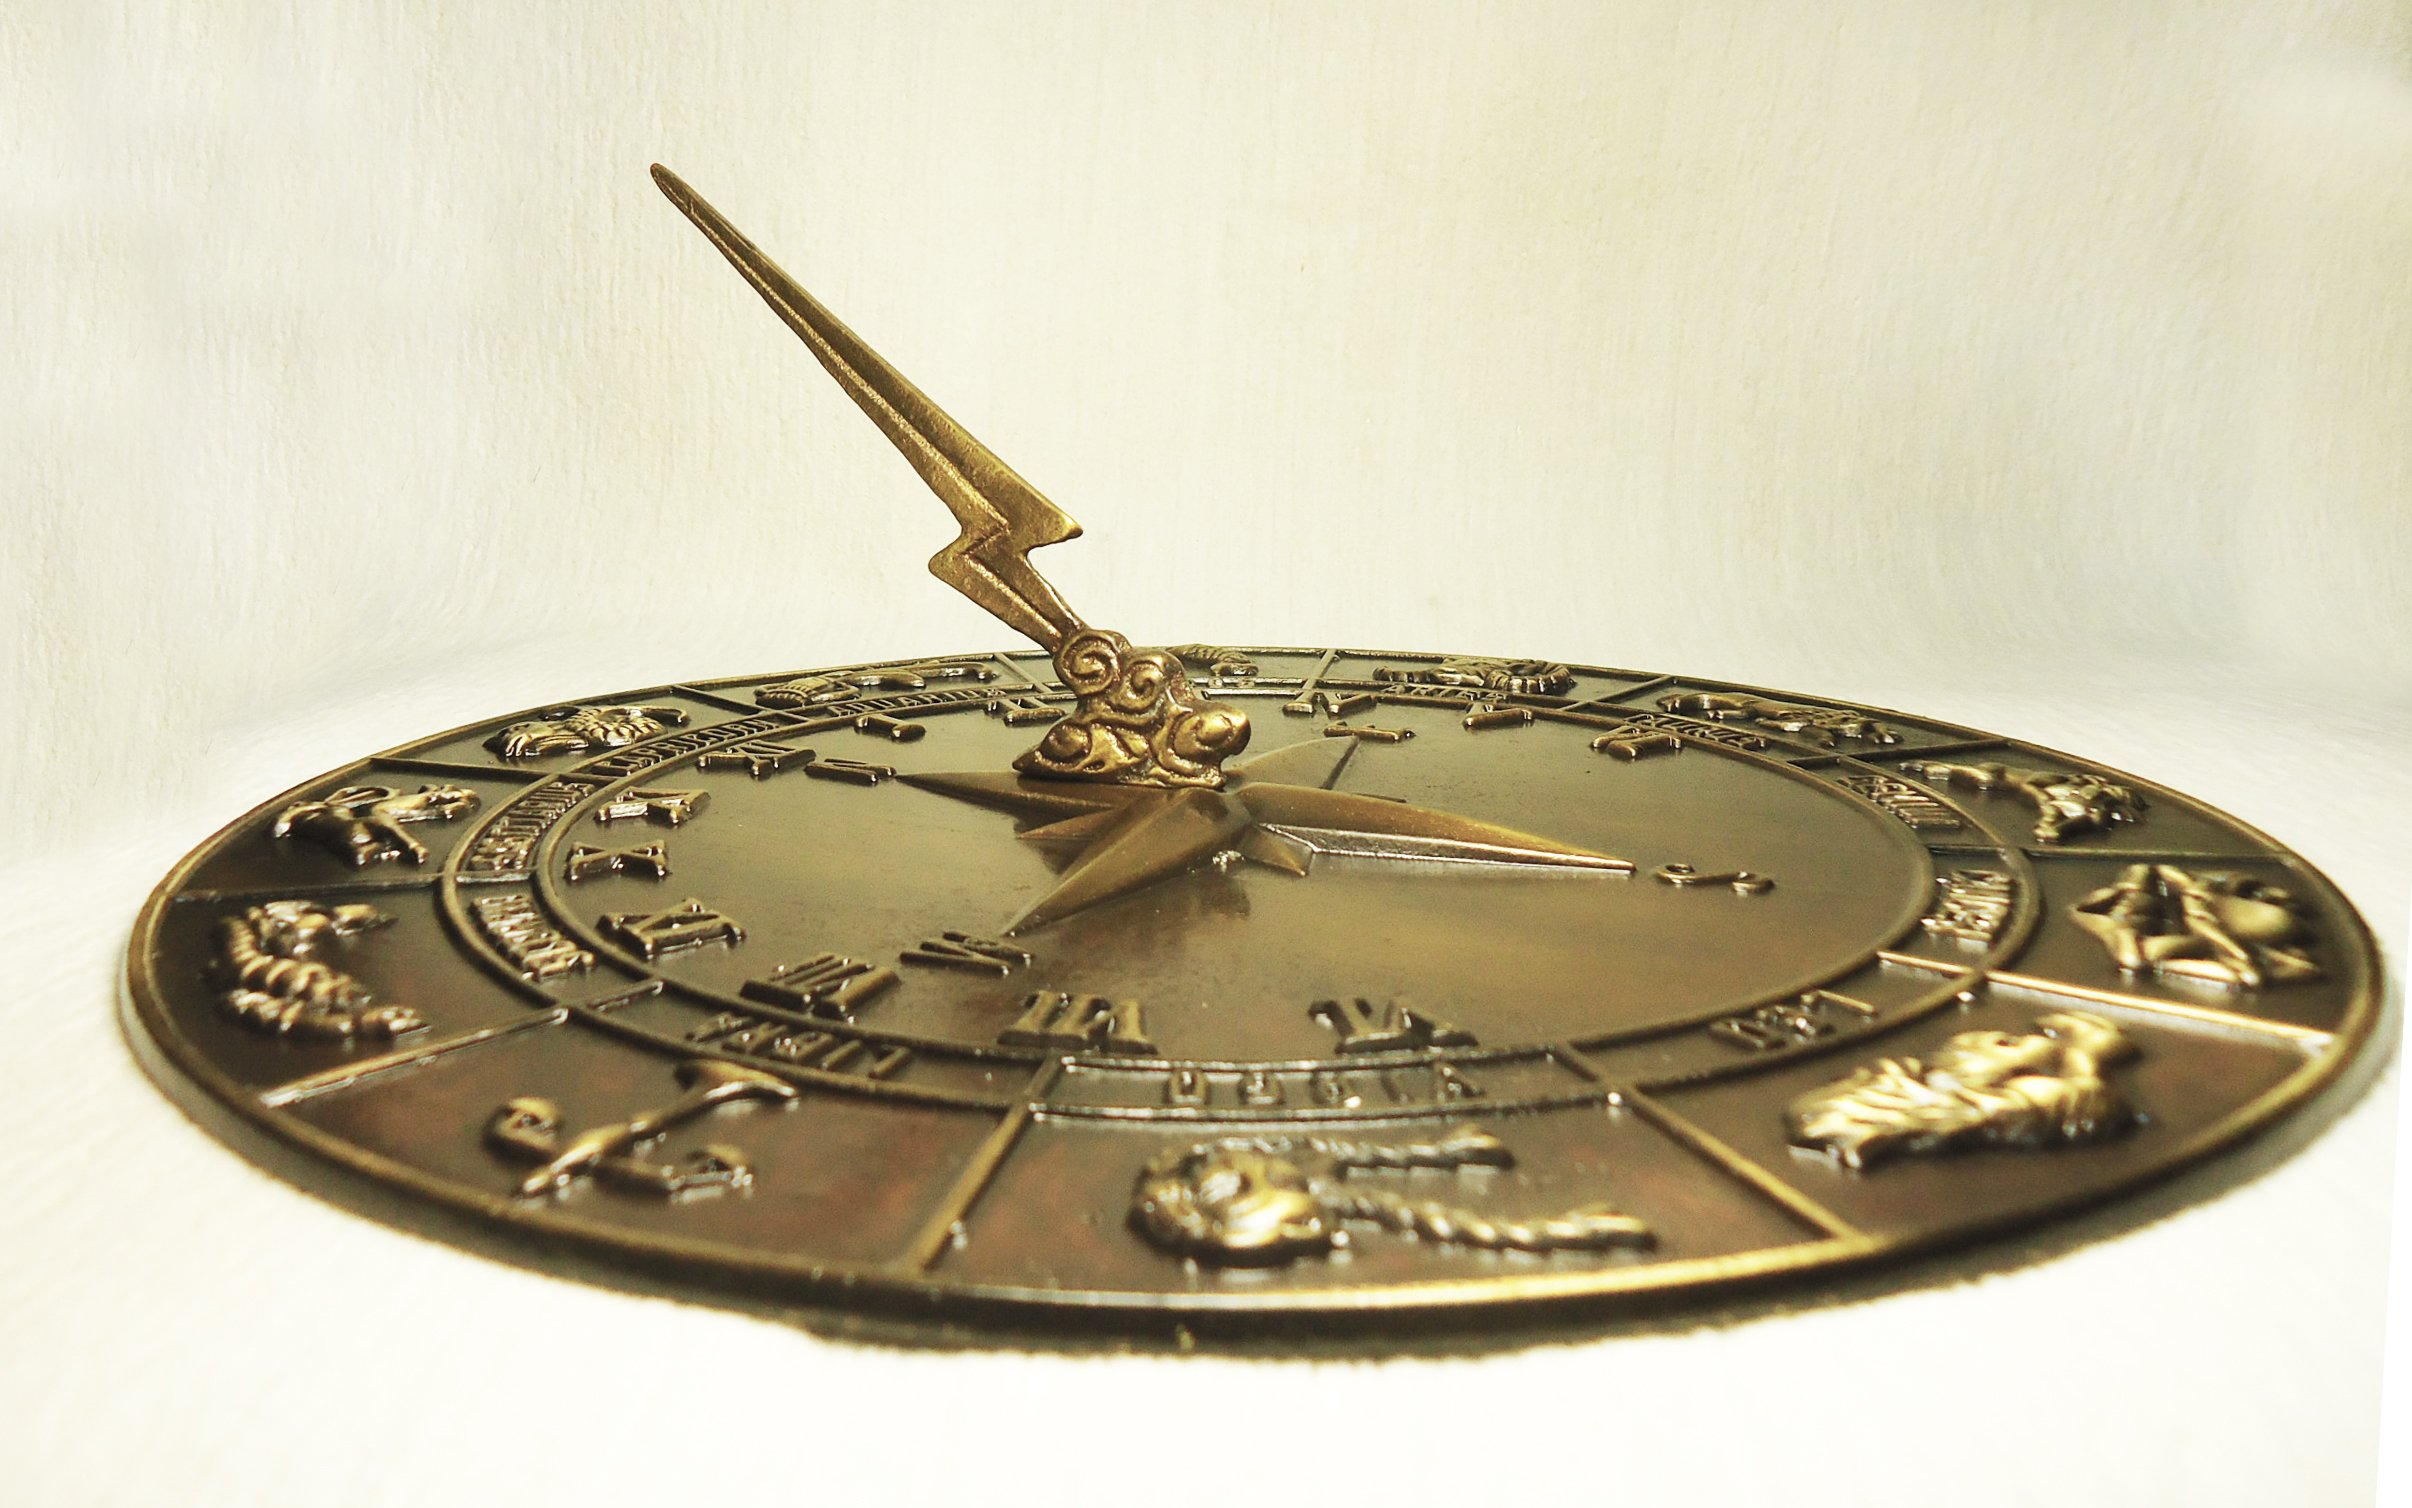 Brass Constellations Sundial - 12'' inches wide by Taiwan (Image #5)